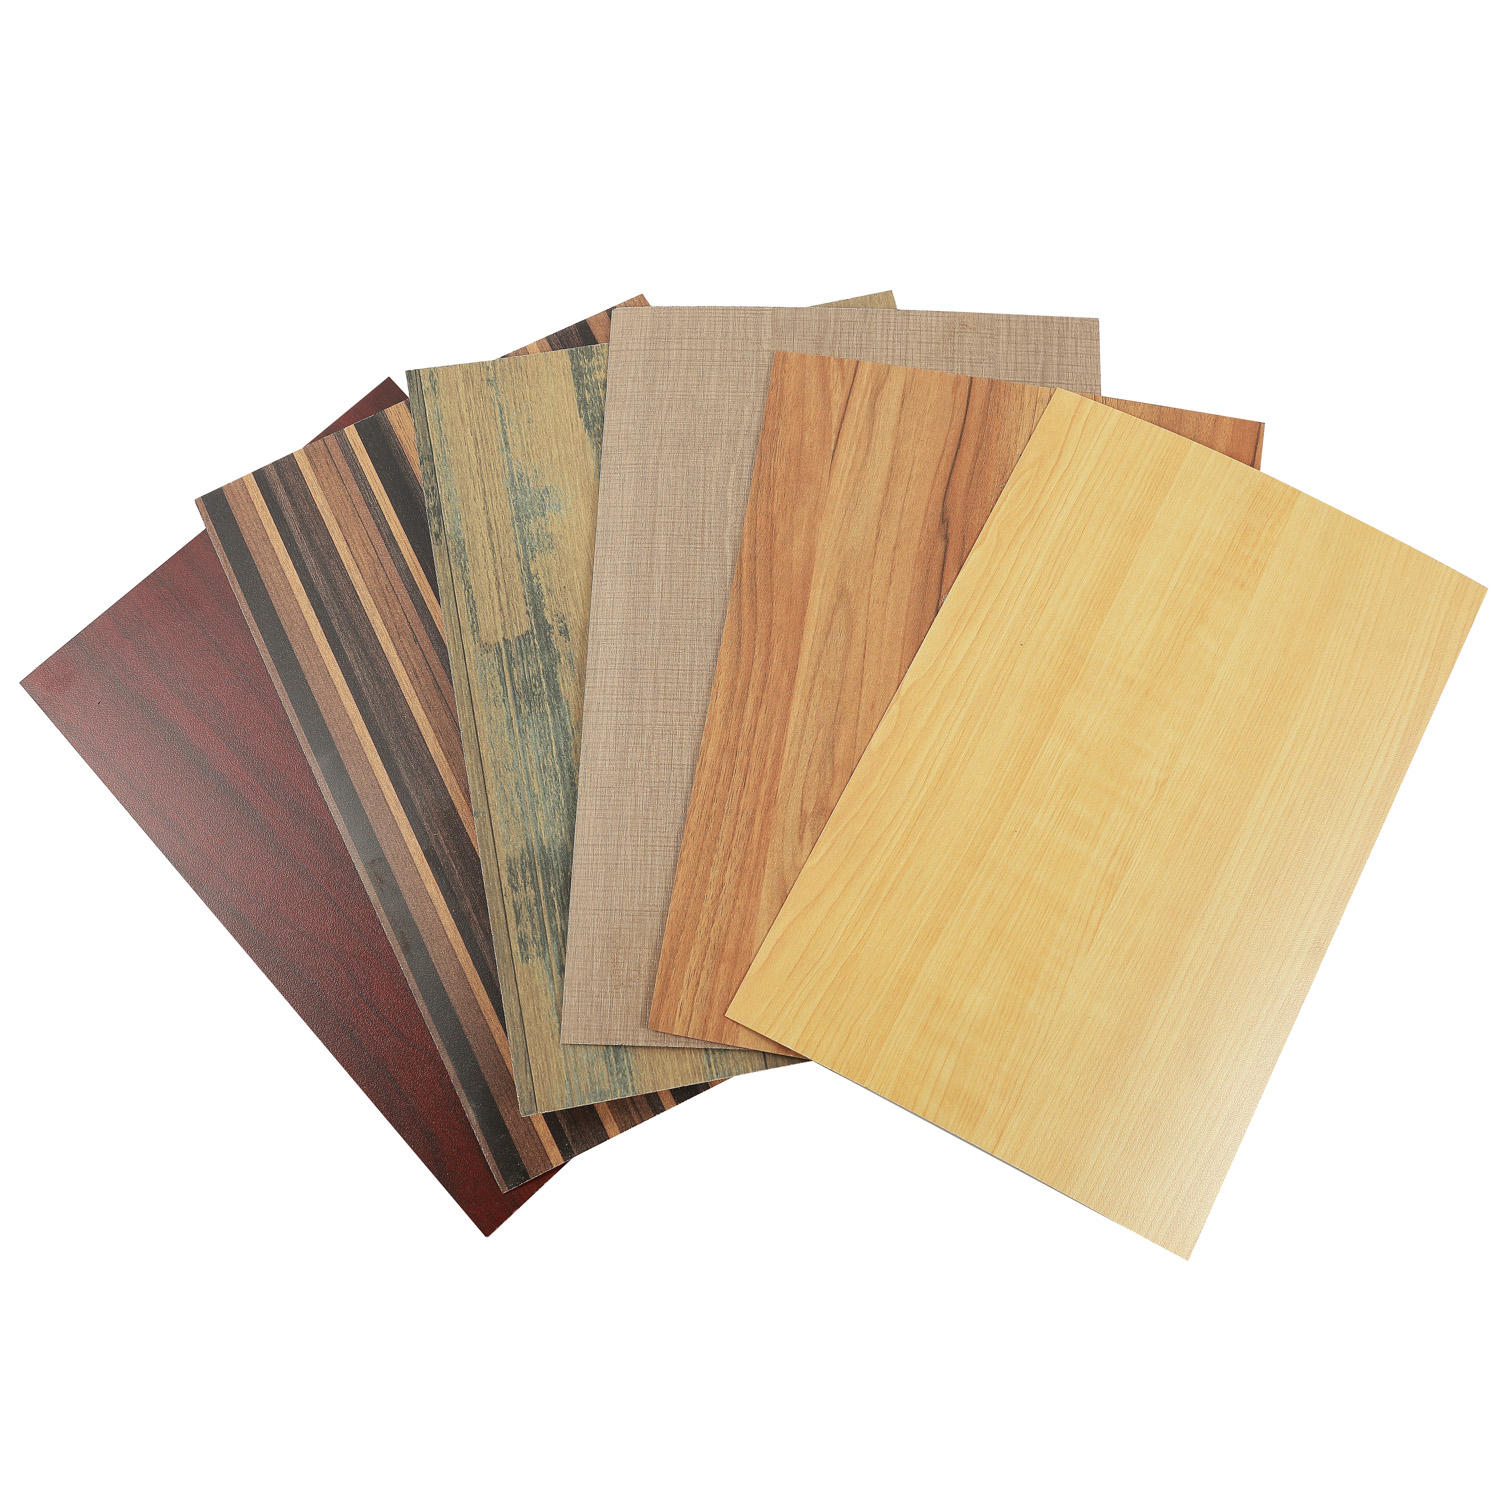 price sheets of formica decorative wood moldings for doors 06mm wood grain hpl laminate